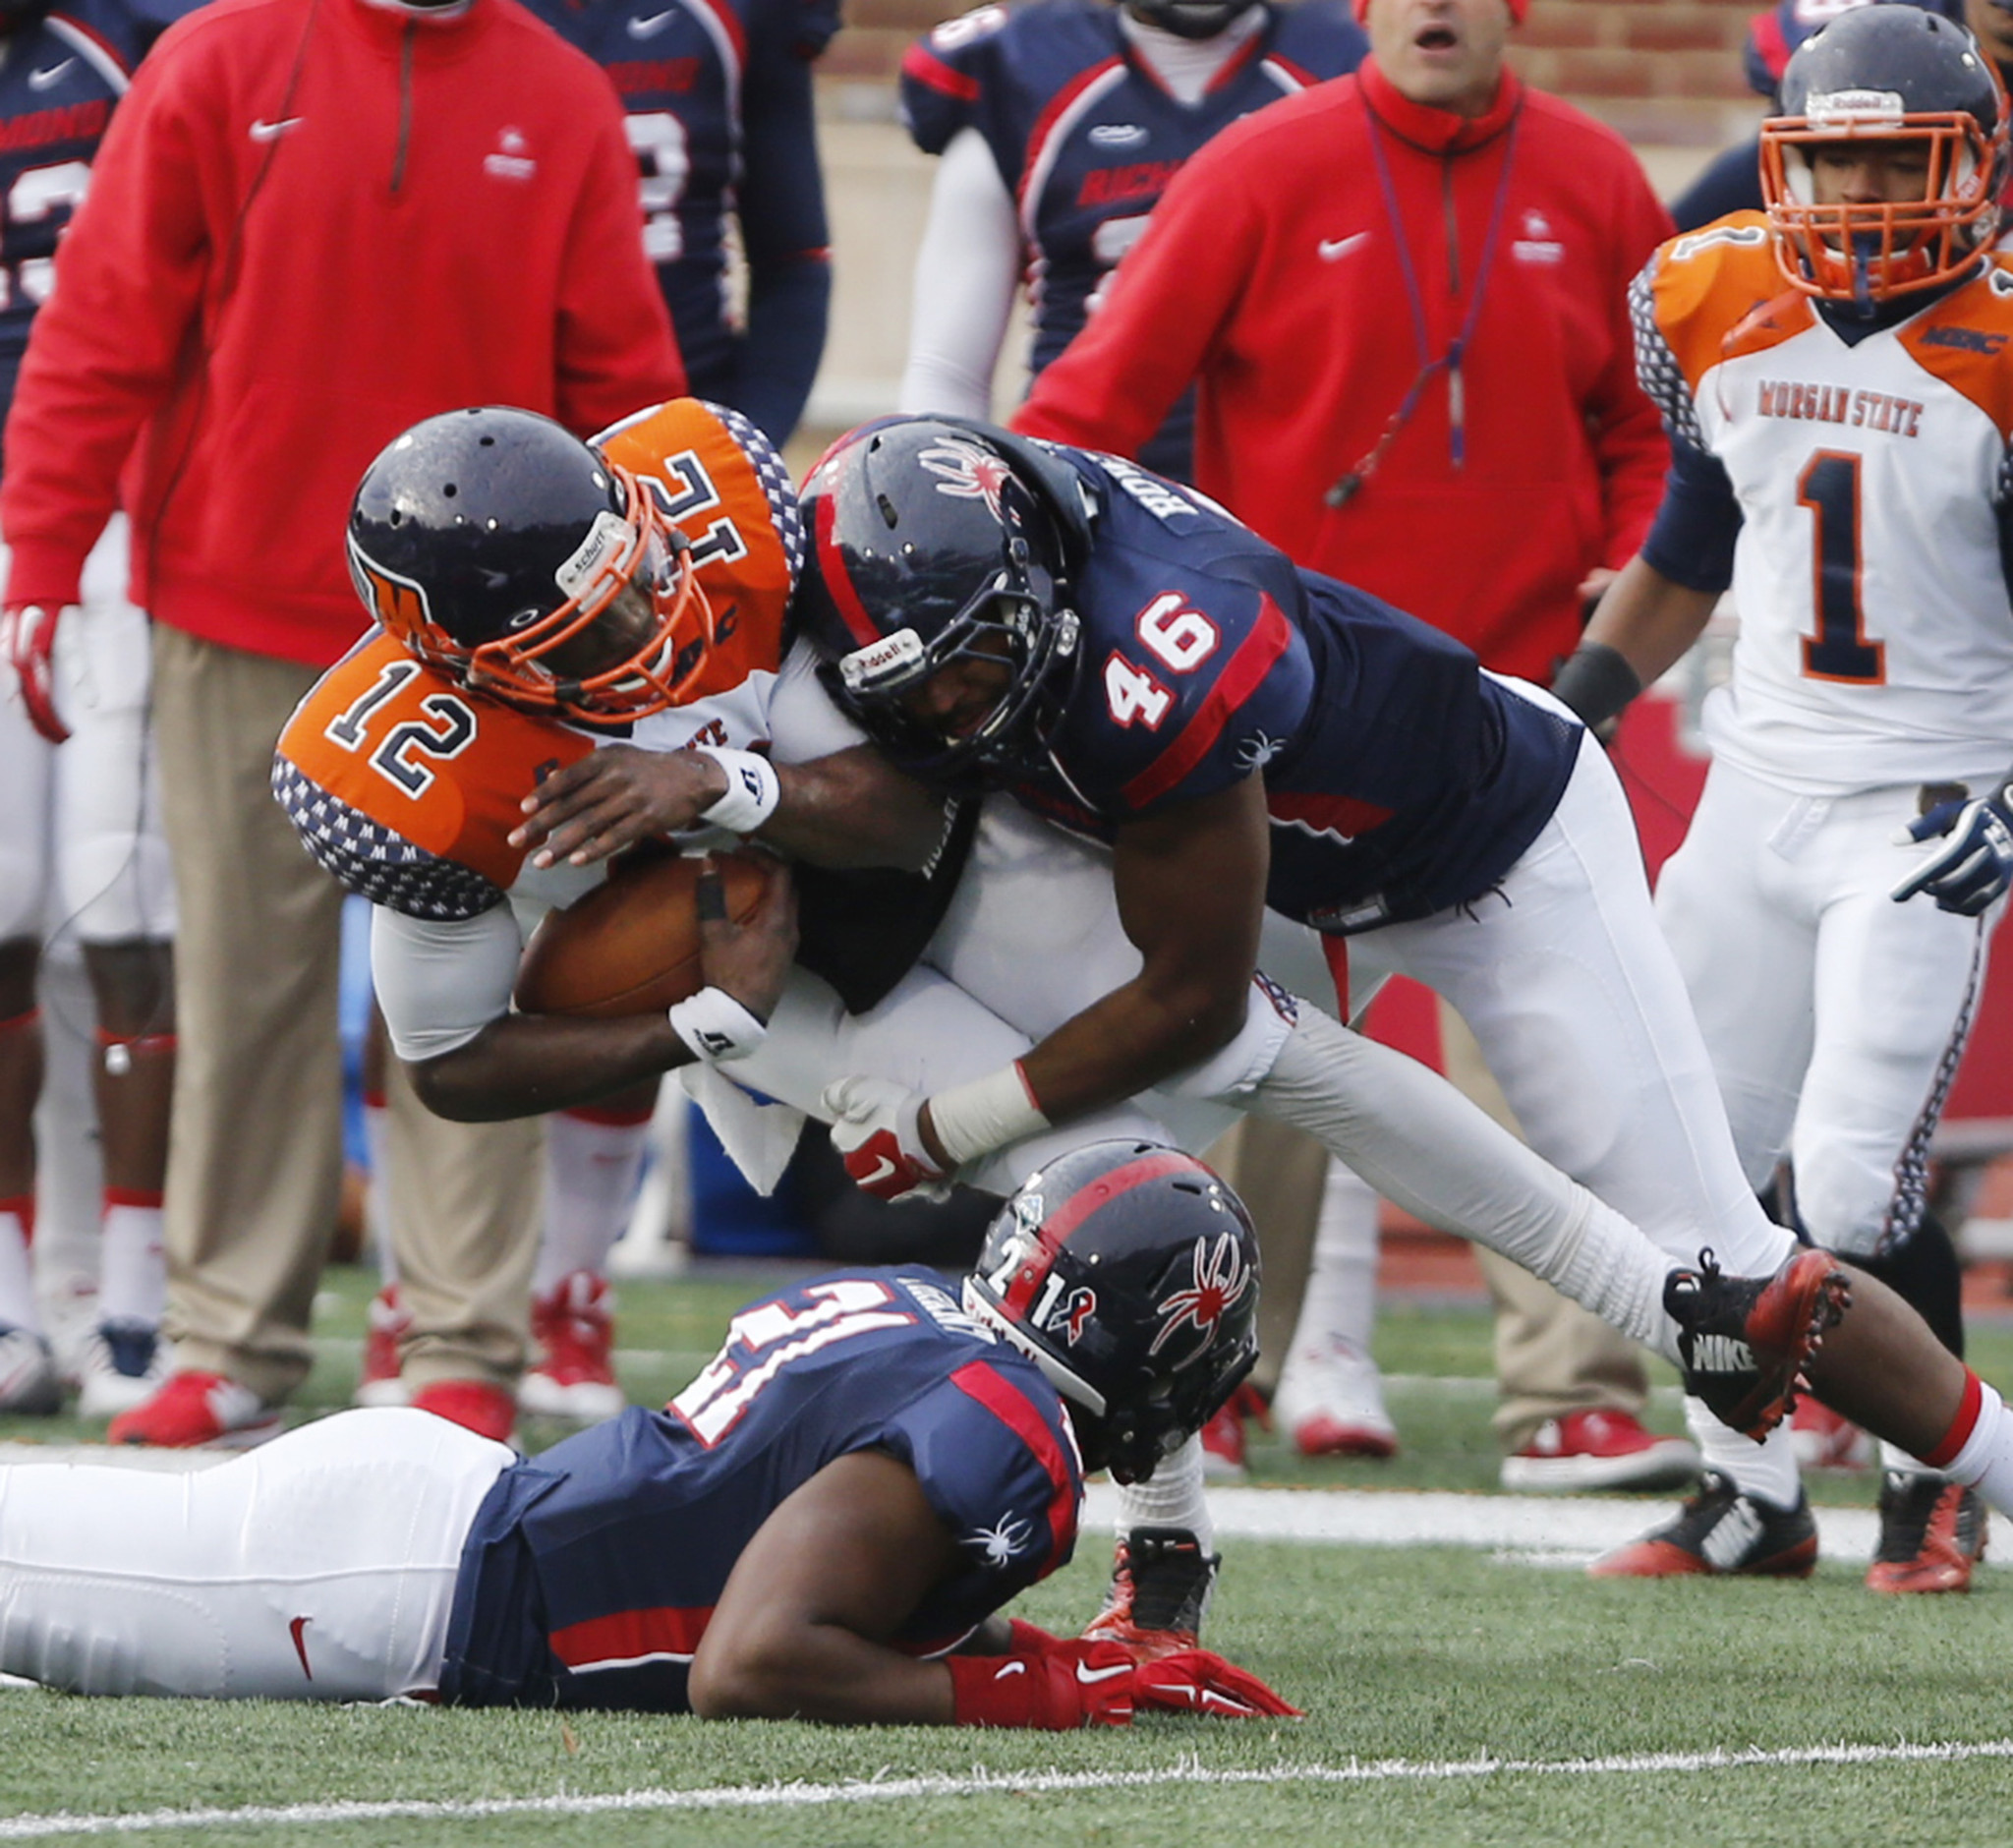 Morgan State Bears come up short against Richmond...